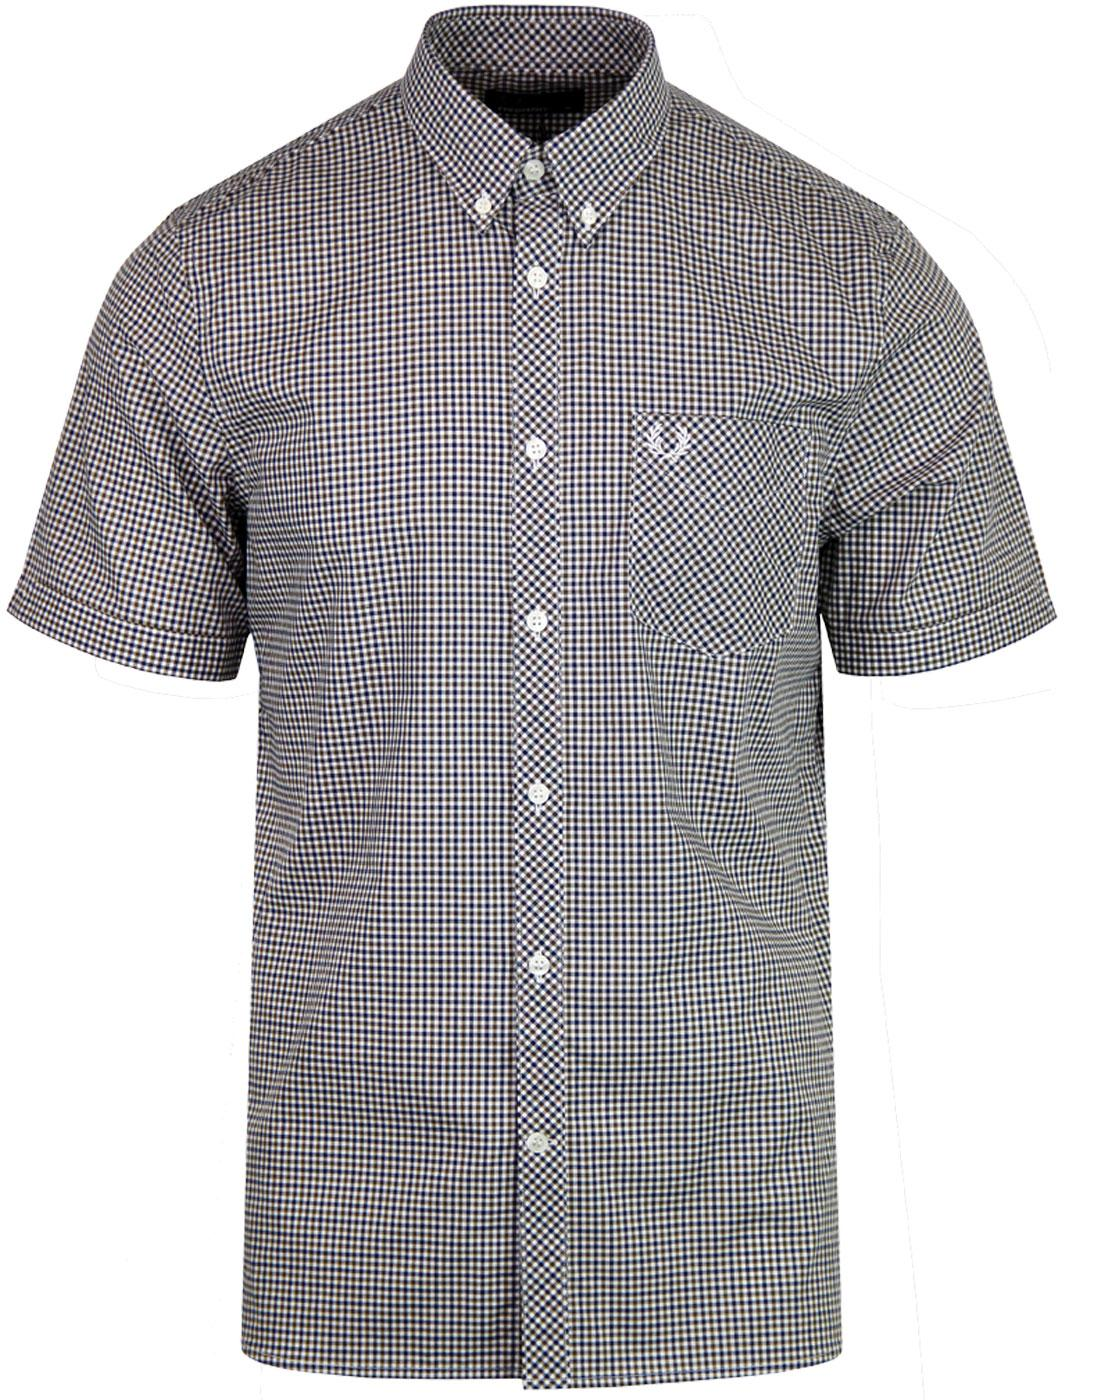 FRED PERRY Retro S/S 3 Colour Gingham Check Shirt